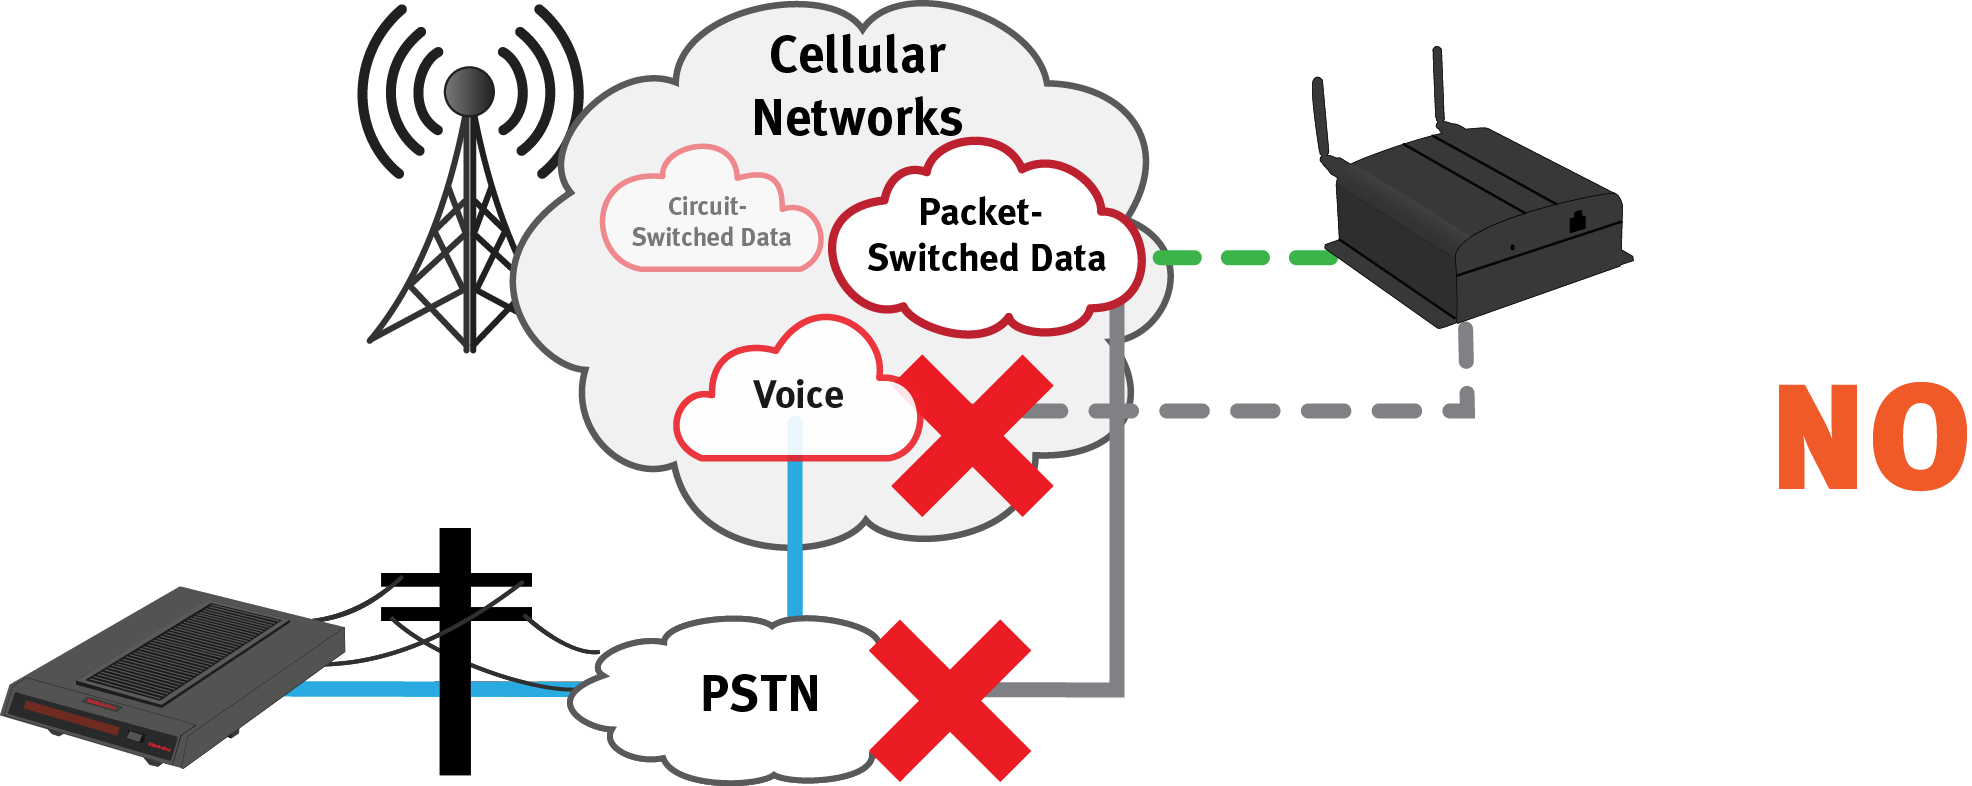 PSTN Voice Data Network does not work between land line modems and cellular modems